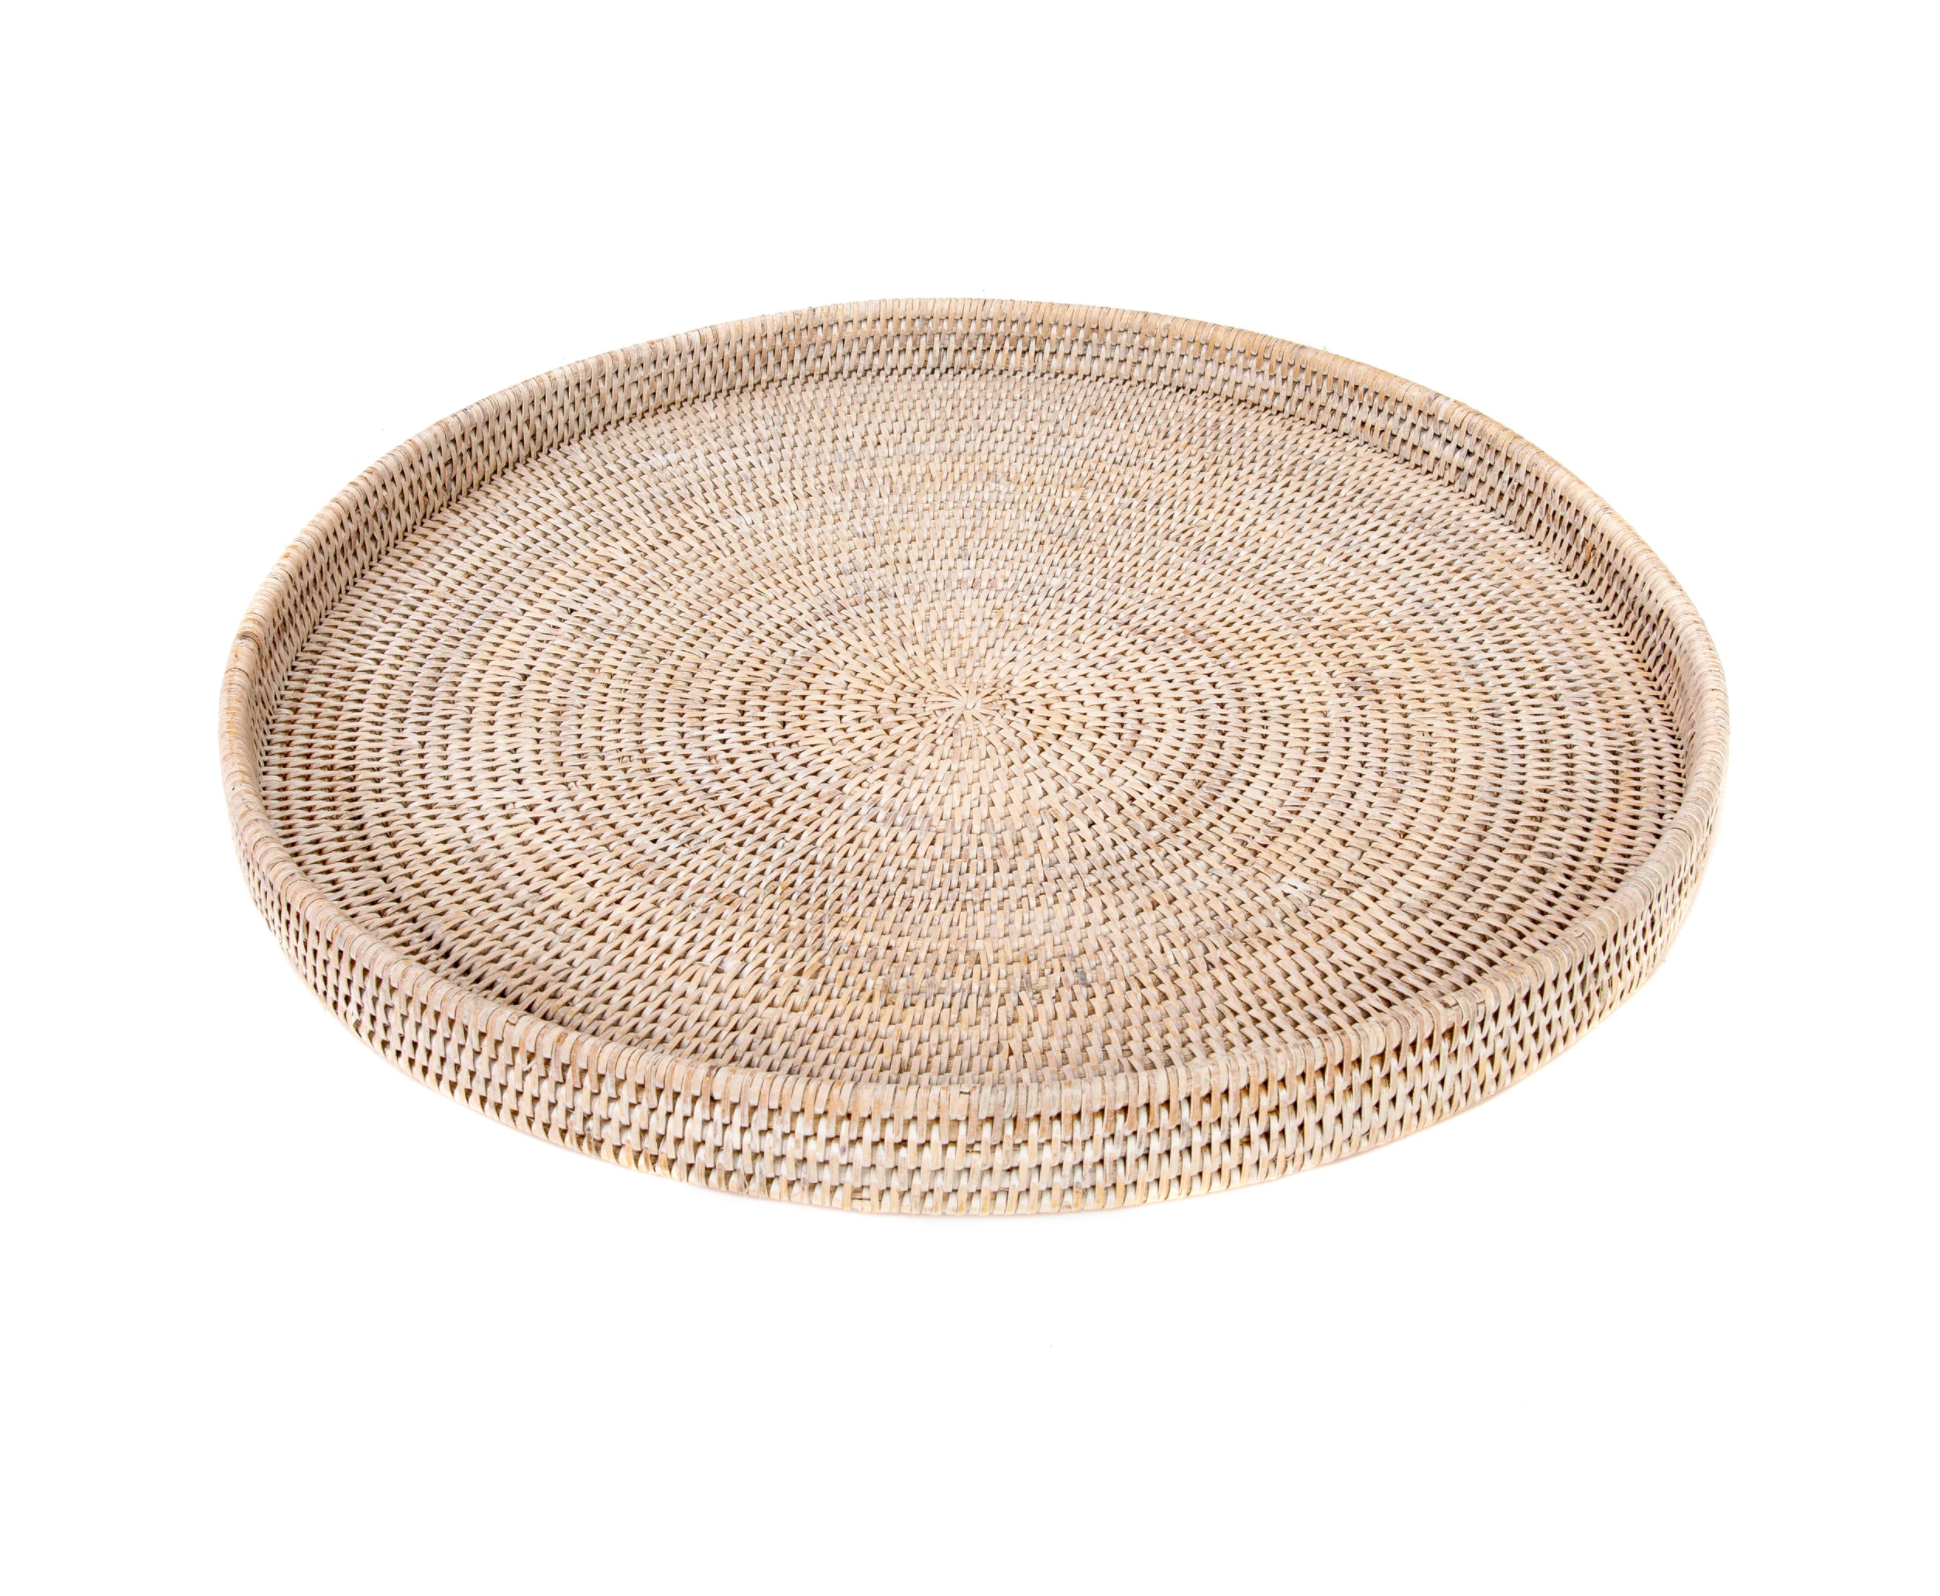 Whitewashed Round Rattan Serving Tray